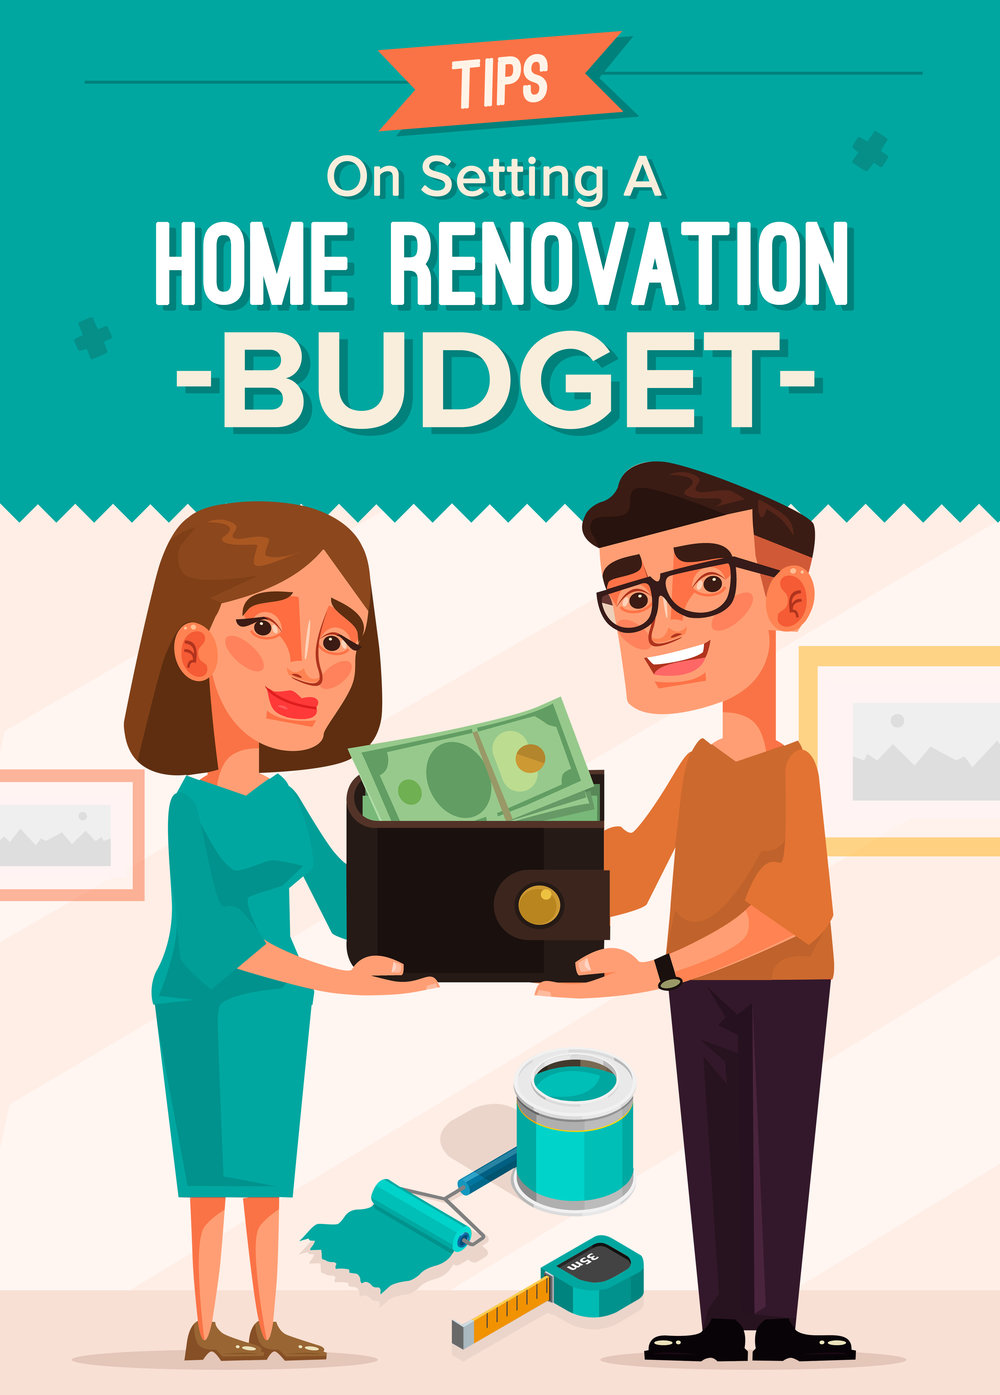 Tips On Setting A Home Renovation Budget